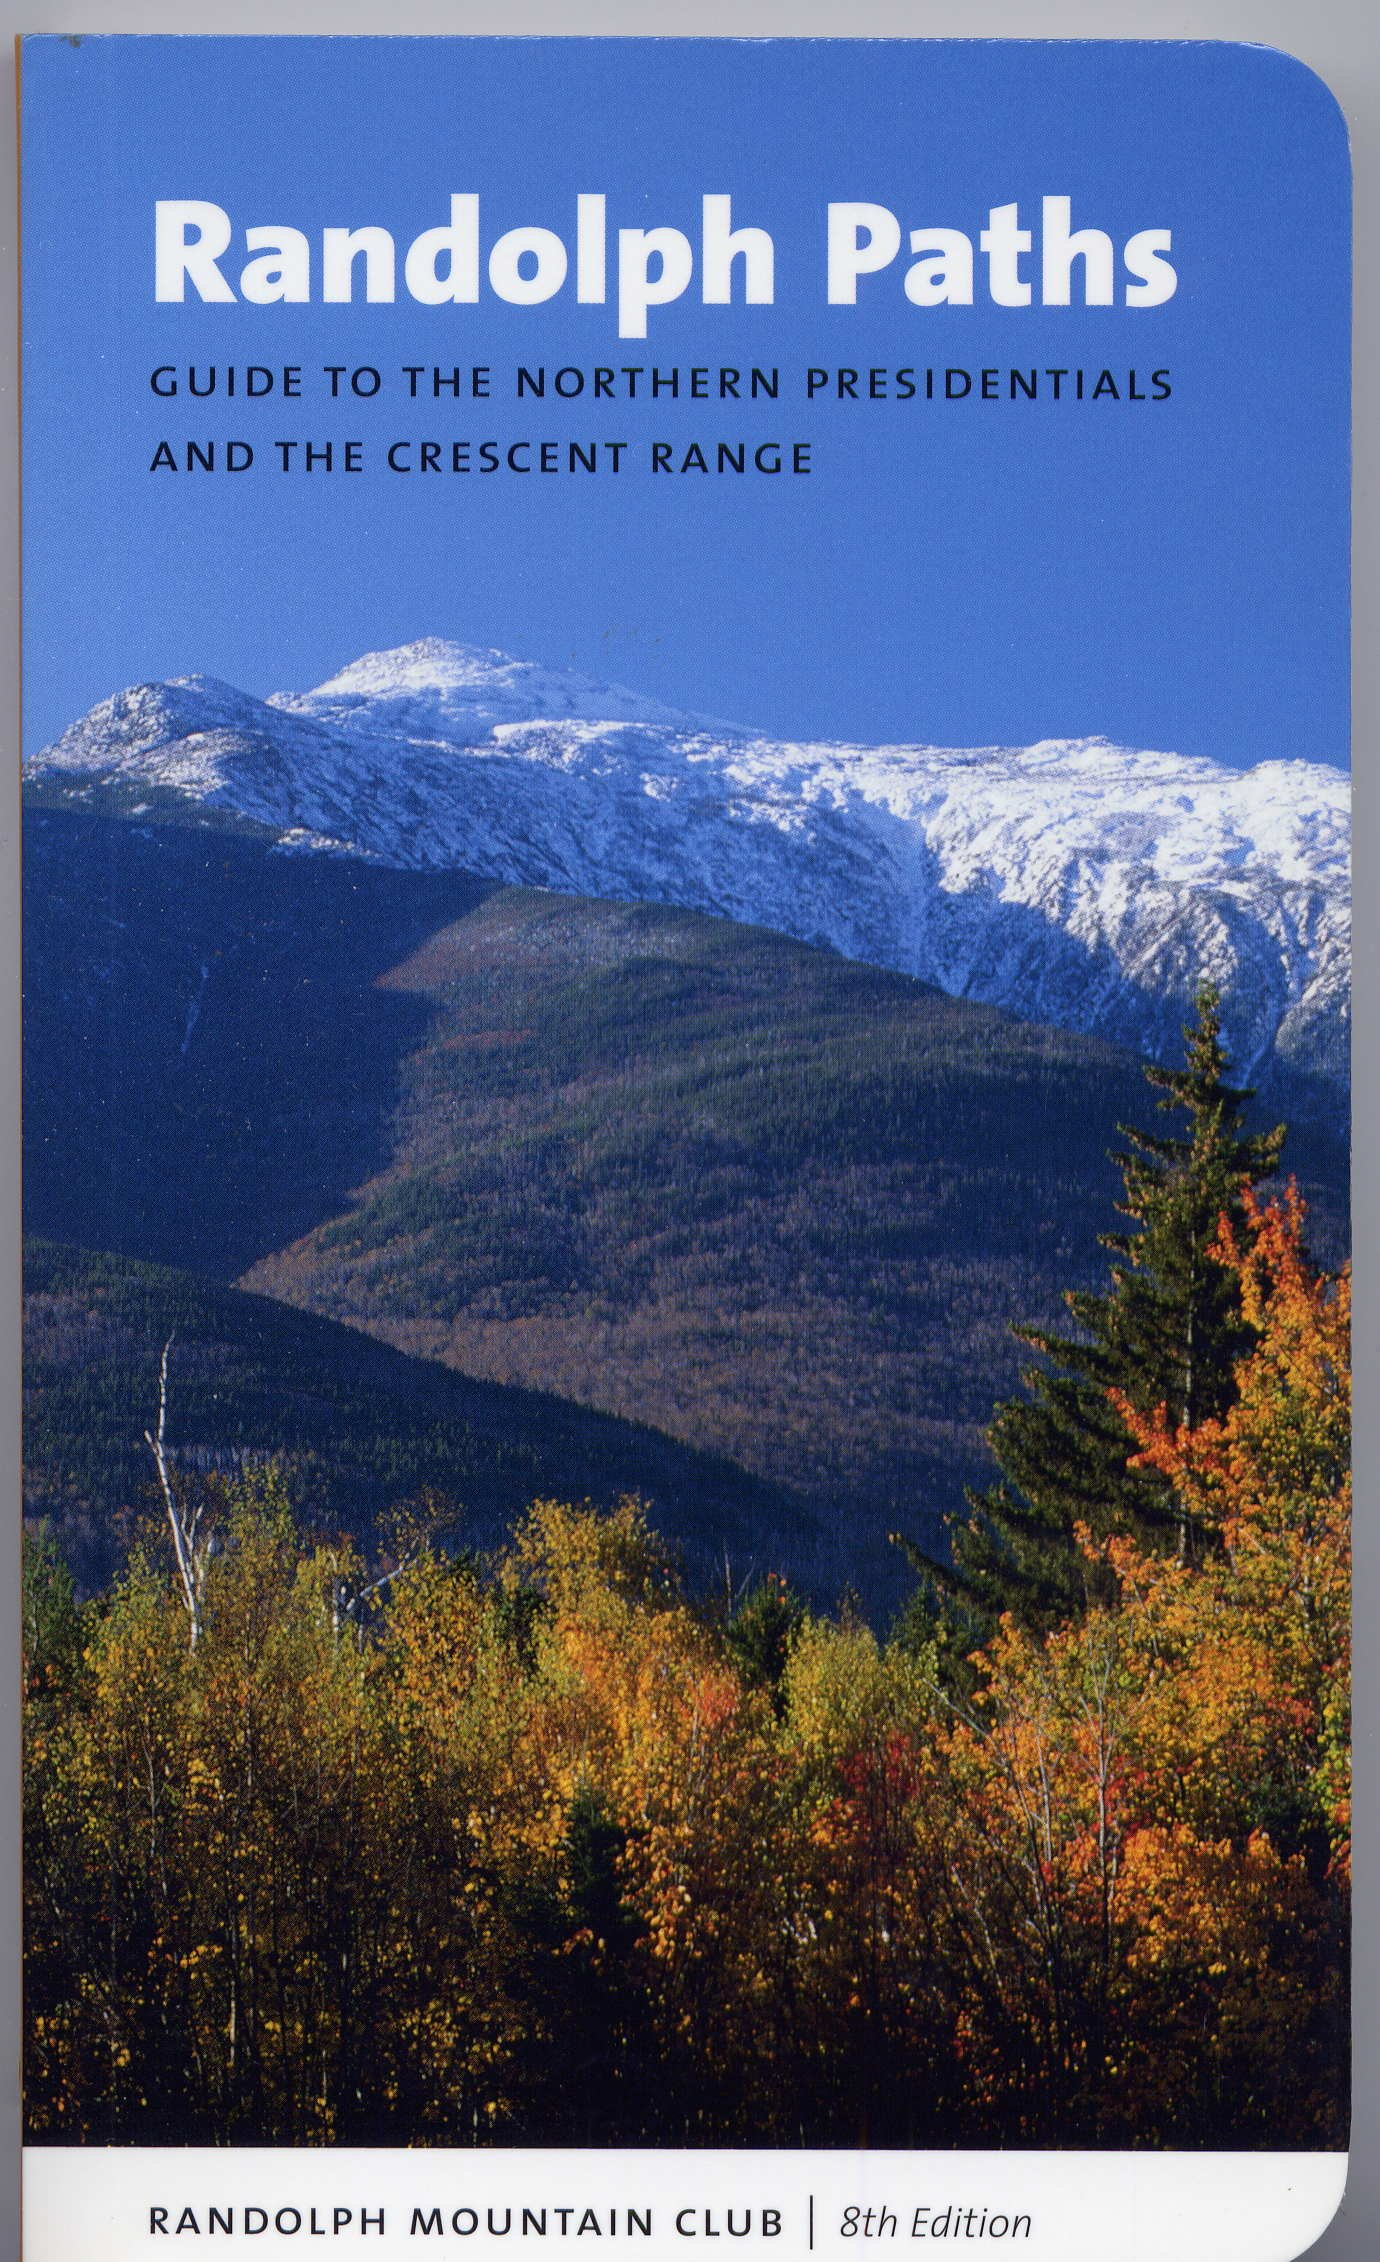 Download Randolph Paths Guide to the Northern Presidentials and the Crescent Range ebook